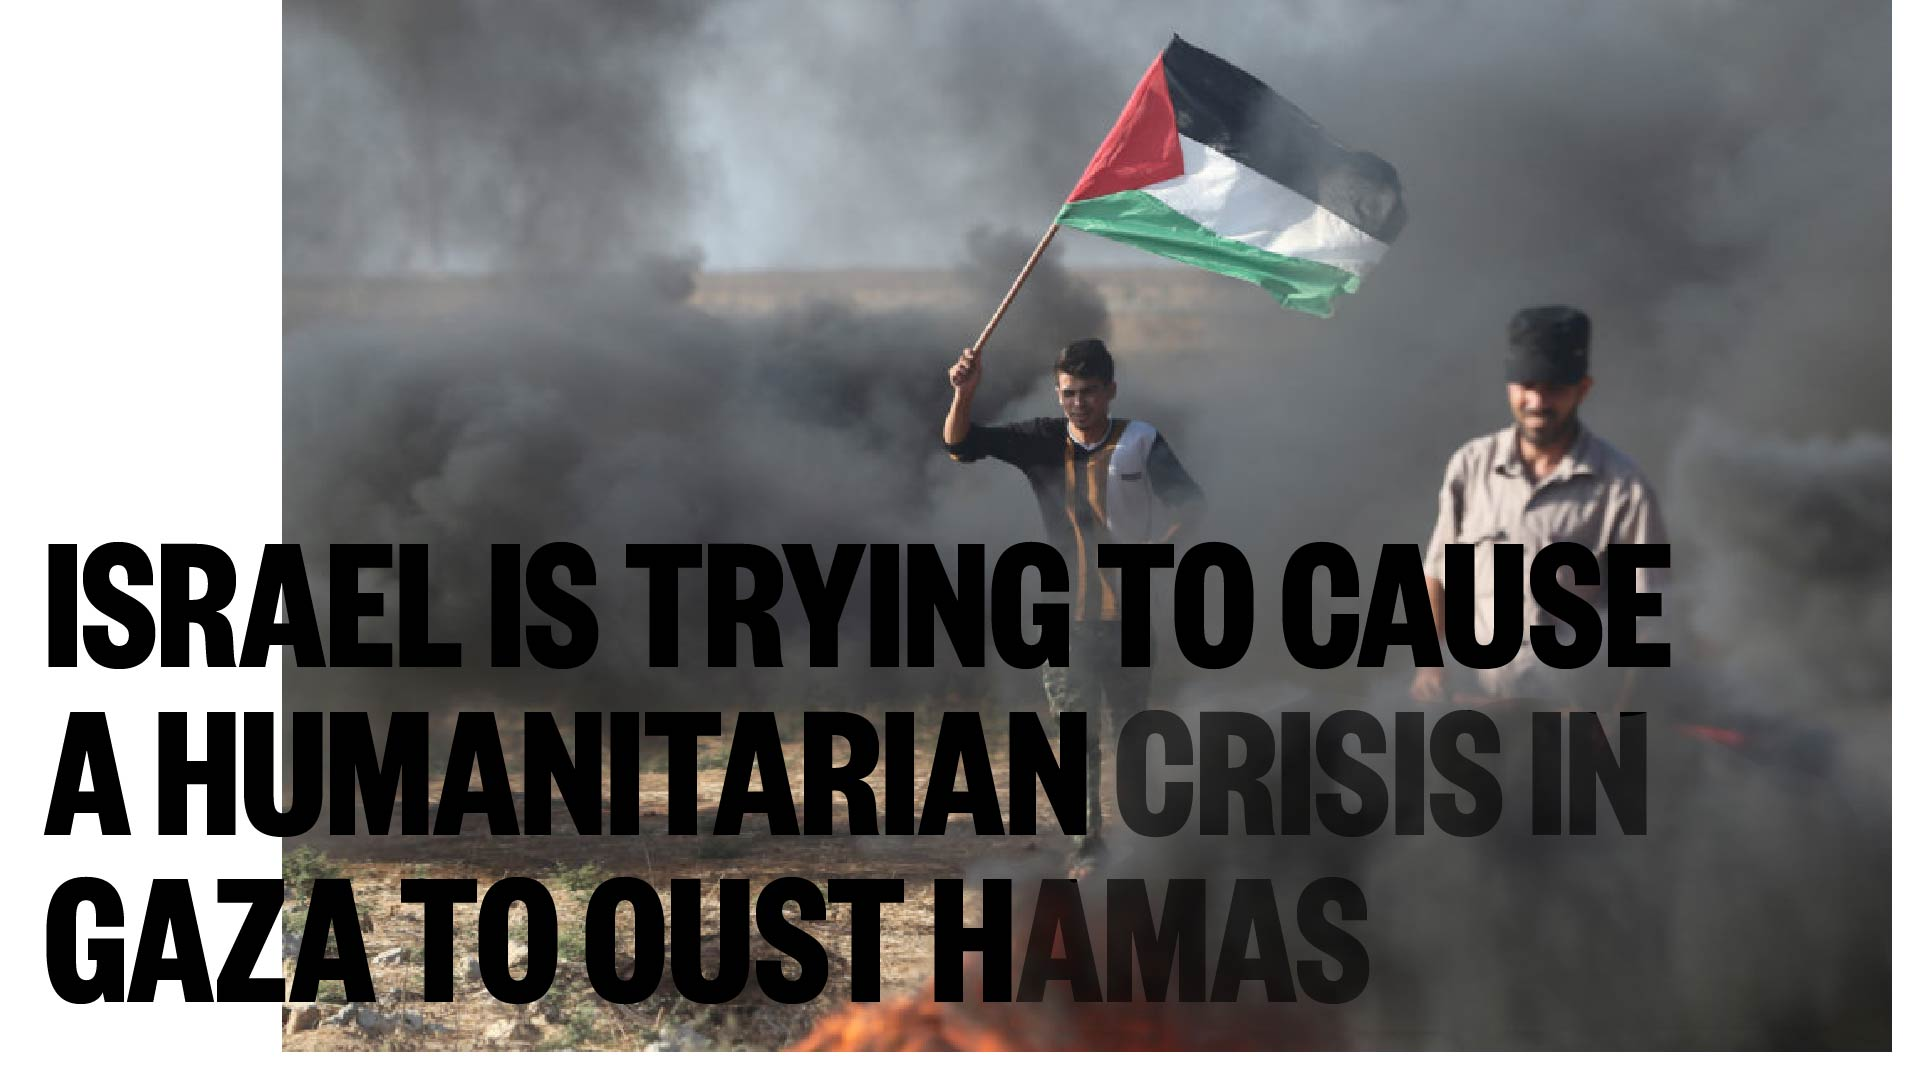 Israel is trying to cause a humanitarian crisis in Gaza to oust Hamas